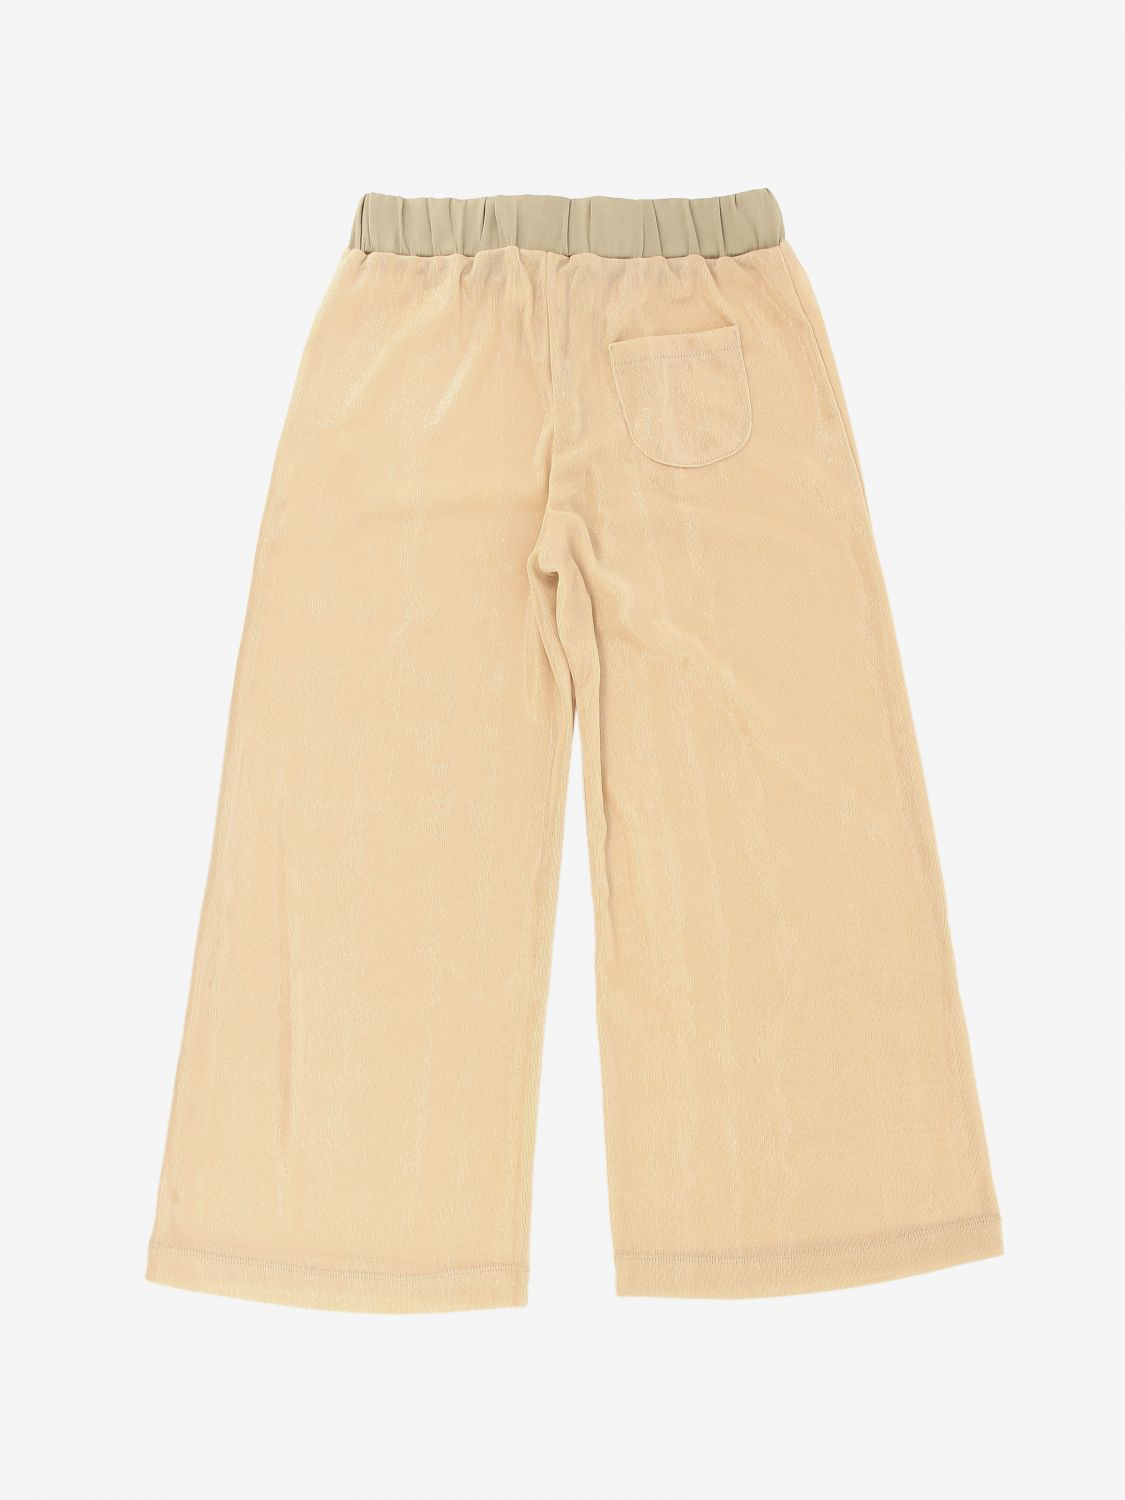 Pantalone Caffe' D'orzo: Pantalone Caffe' D'orzo con coulisse cipria 2